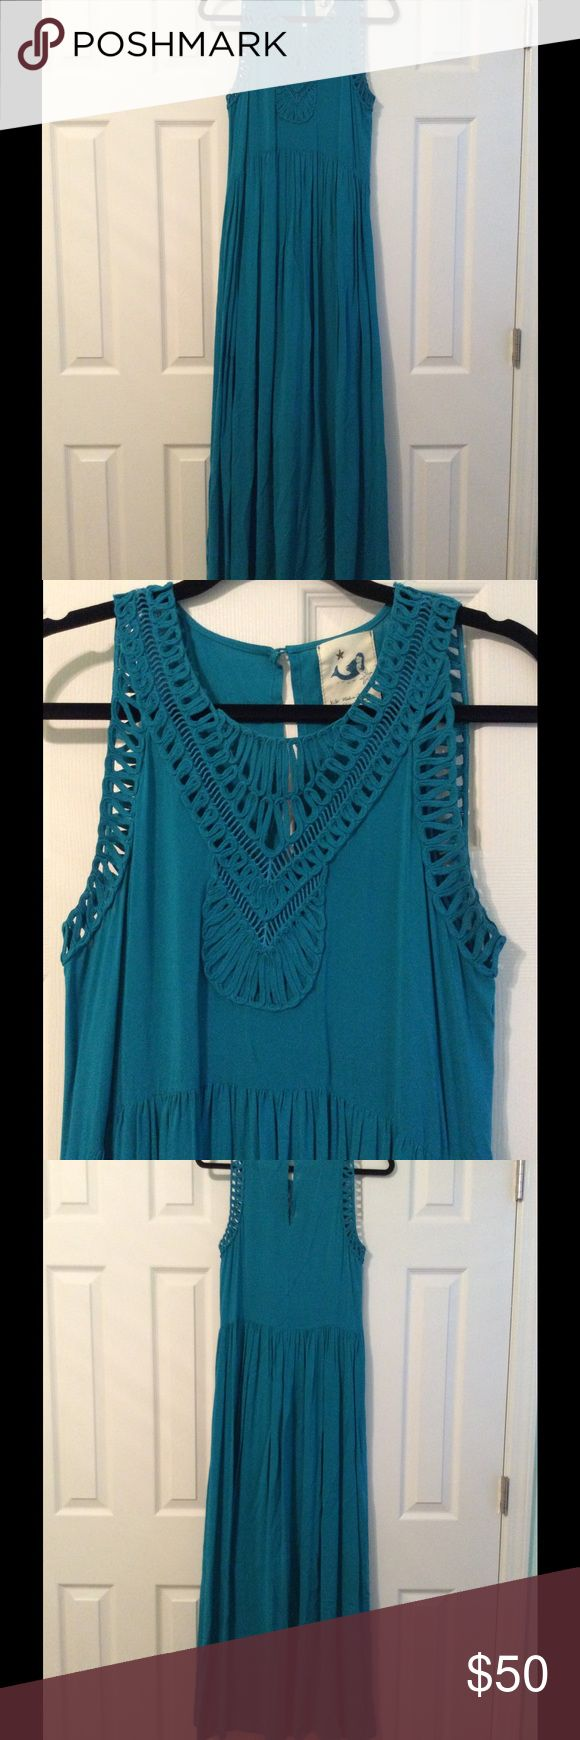 Anthropologie Mermaid Crochet Maxi Dress Excellent condition, I only wore this a few times. It's rayon. Will fit a small or extra small. I'm a small and 34b and it fits perfectly. Anthropologie Dresses Maxi